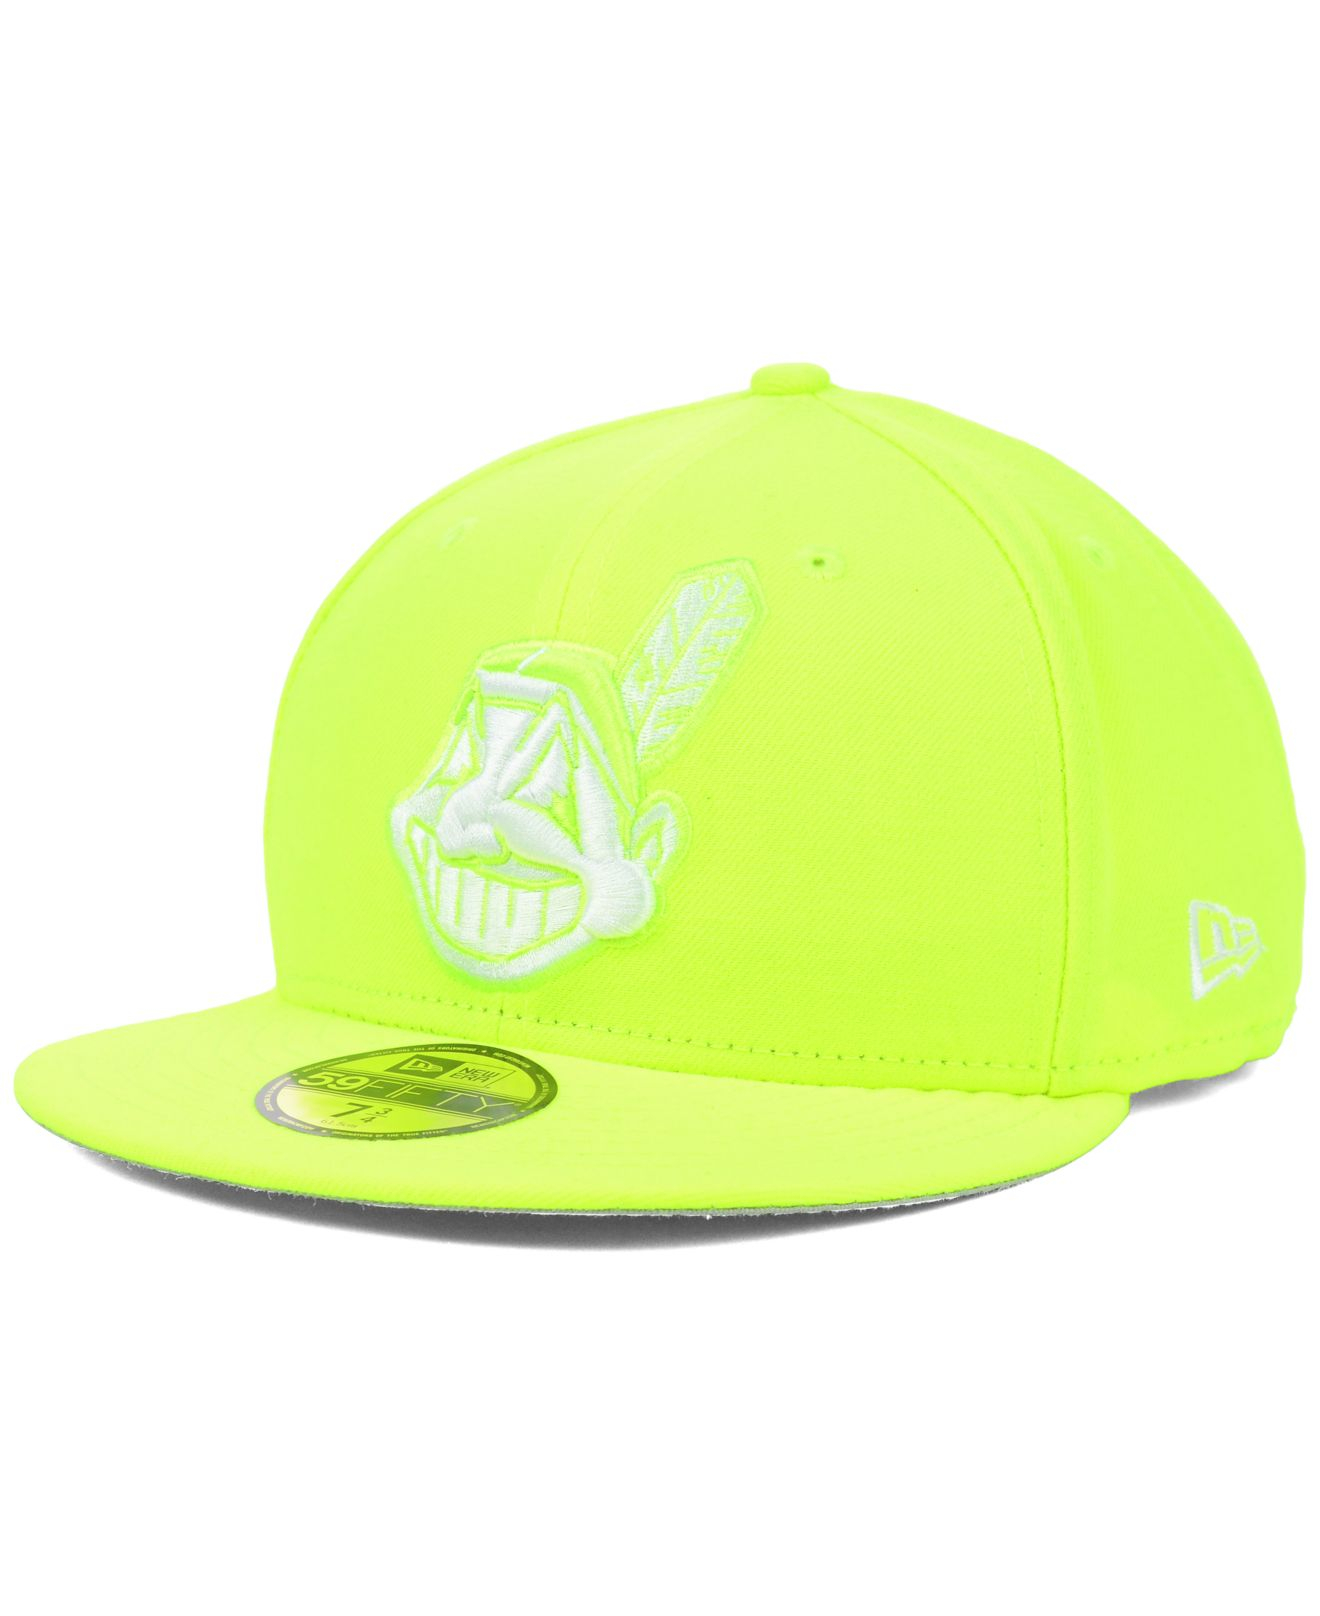 premium selection 42efd 2dcaa wholesale lyst ktz cleveland indians mlb c dub 59fifty cap in yellow for  men d1a6c ba580